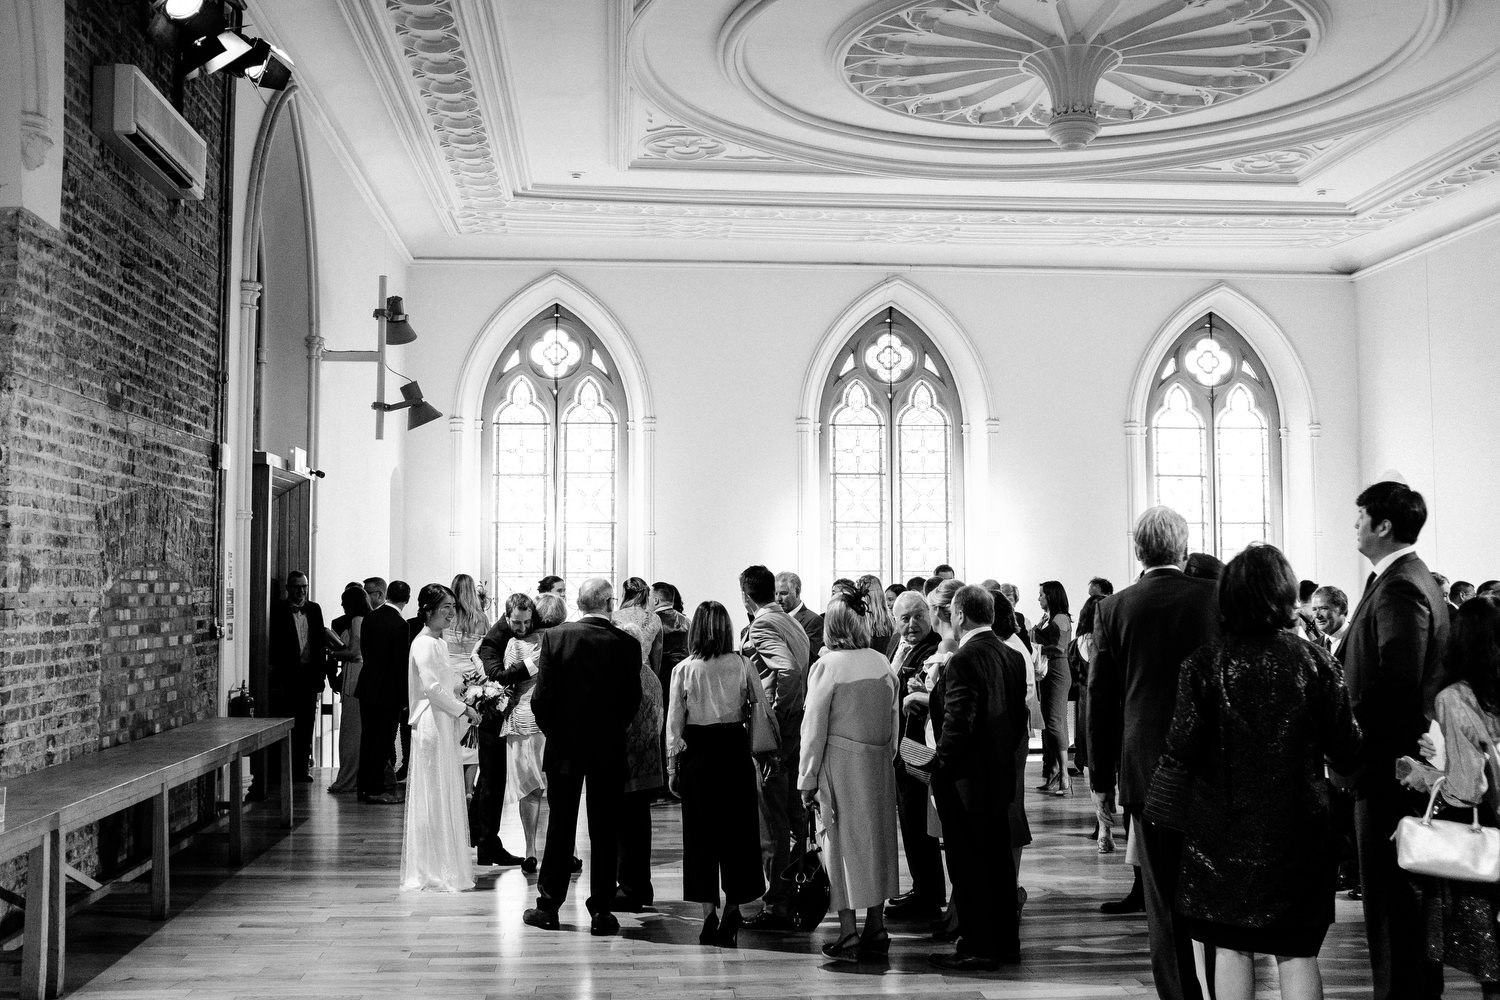 dmp0335_dublin_alley_photography_david_mcclelland_ceremony_humanist_documentary_theatre_smock_wedding_photographer